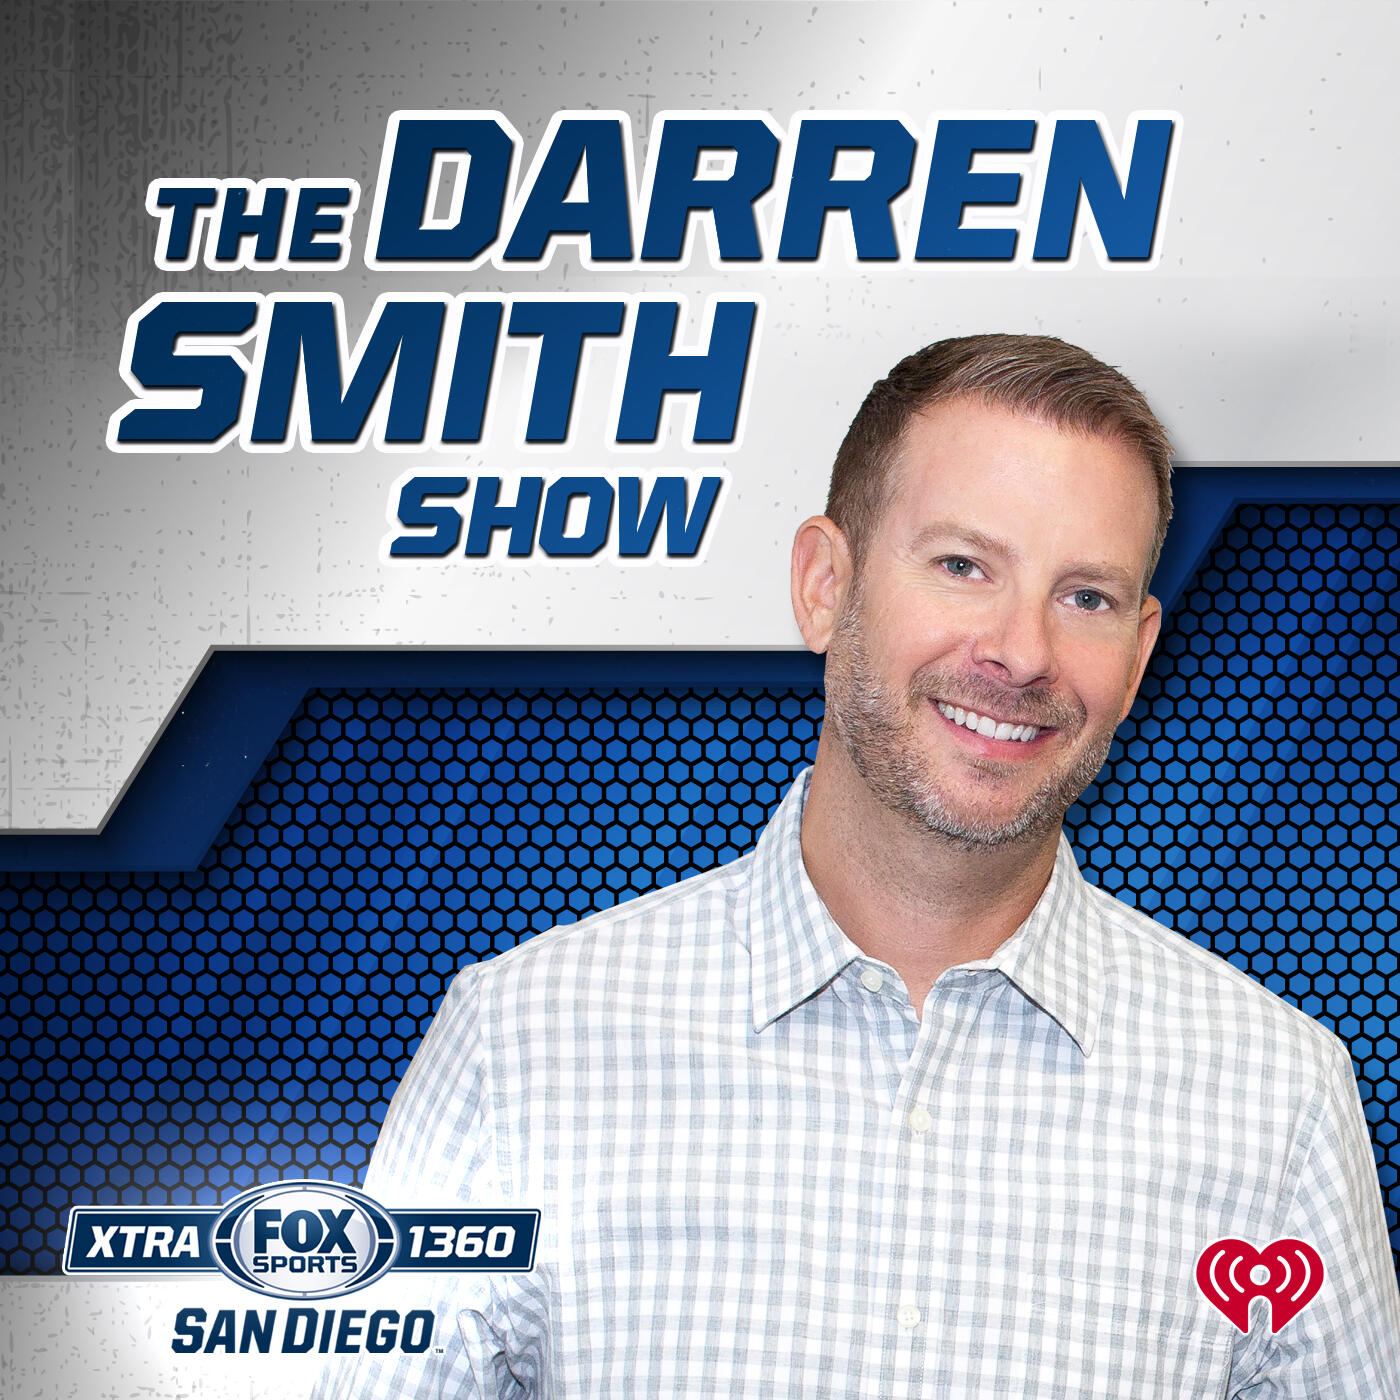 """Listen to the The Darren Smith Show Episode - Landon Donovan """"I feel very good about where we are"""" on iHeartRadio 